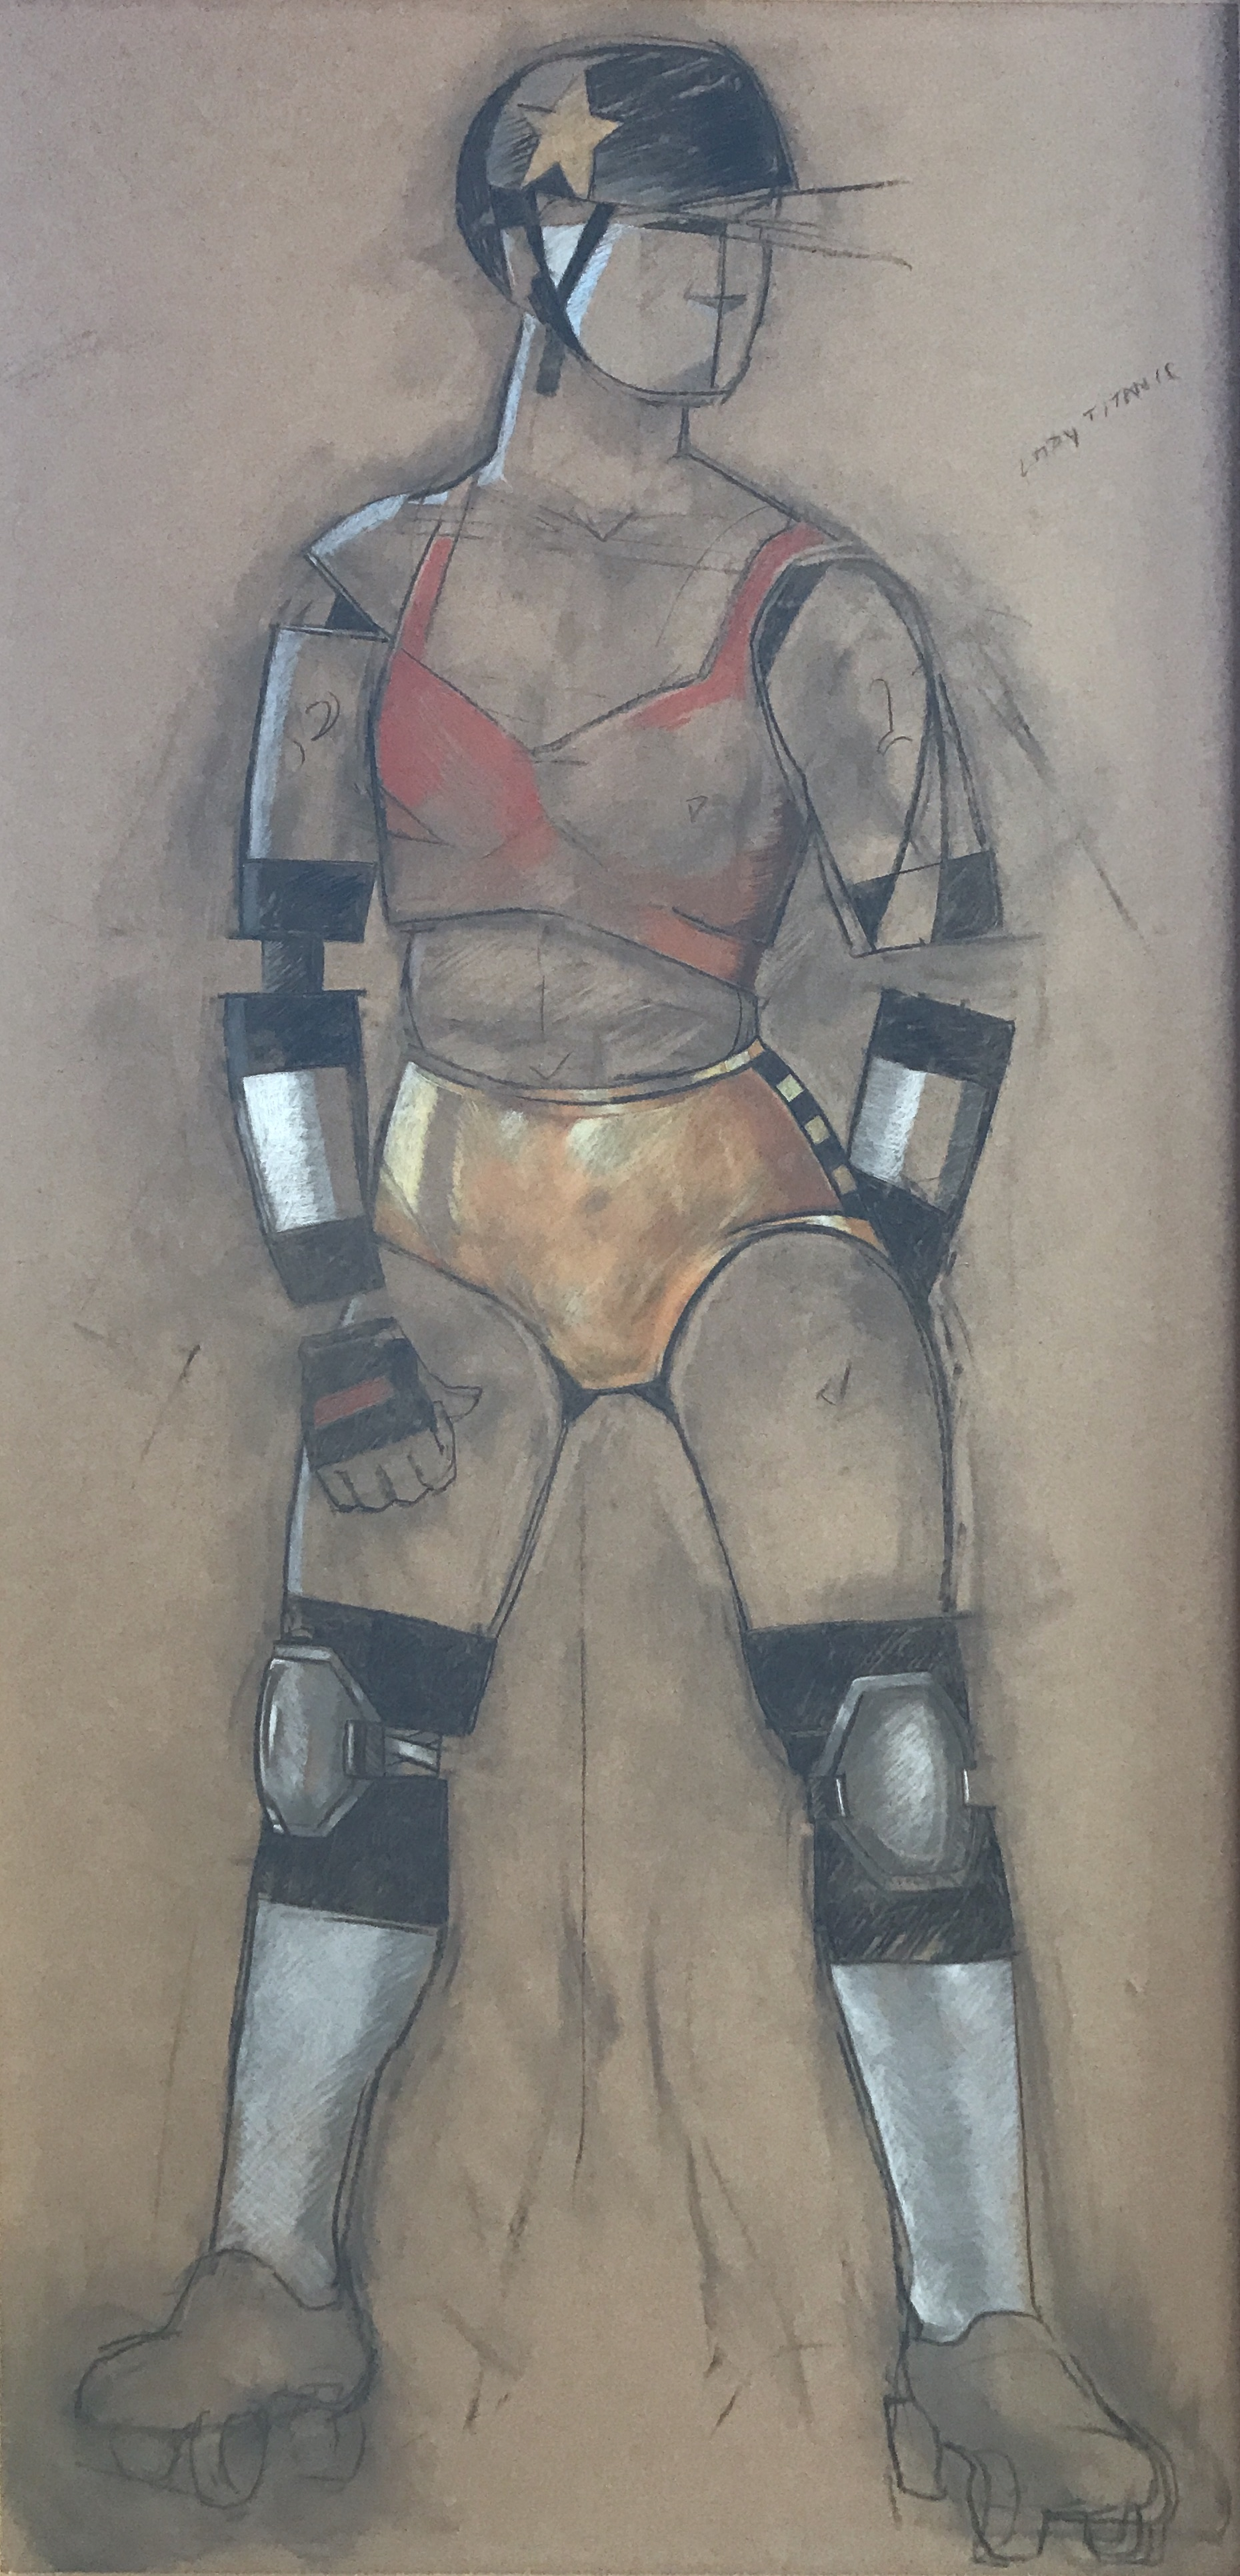 Jann Haworth    Mannequin Defector: Cyborg Derby Jammer   charcoal and pastel on paper, 72 x 35 in.